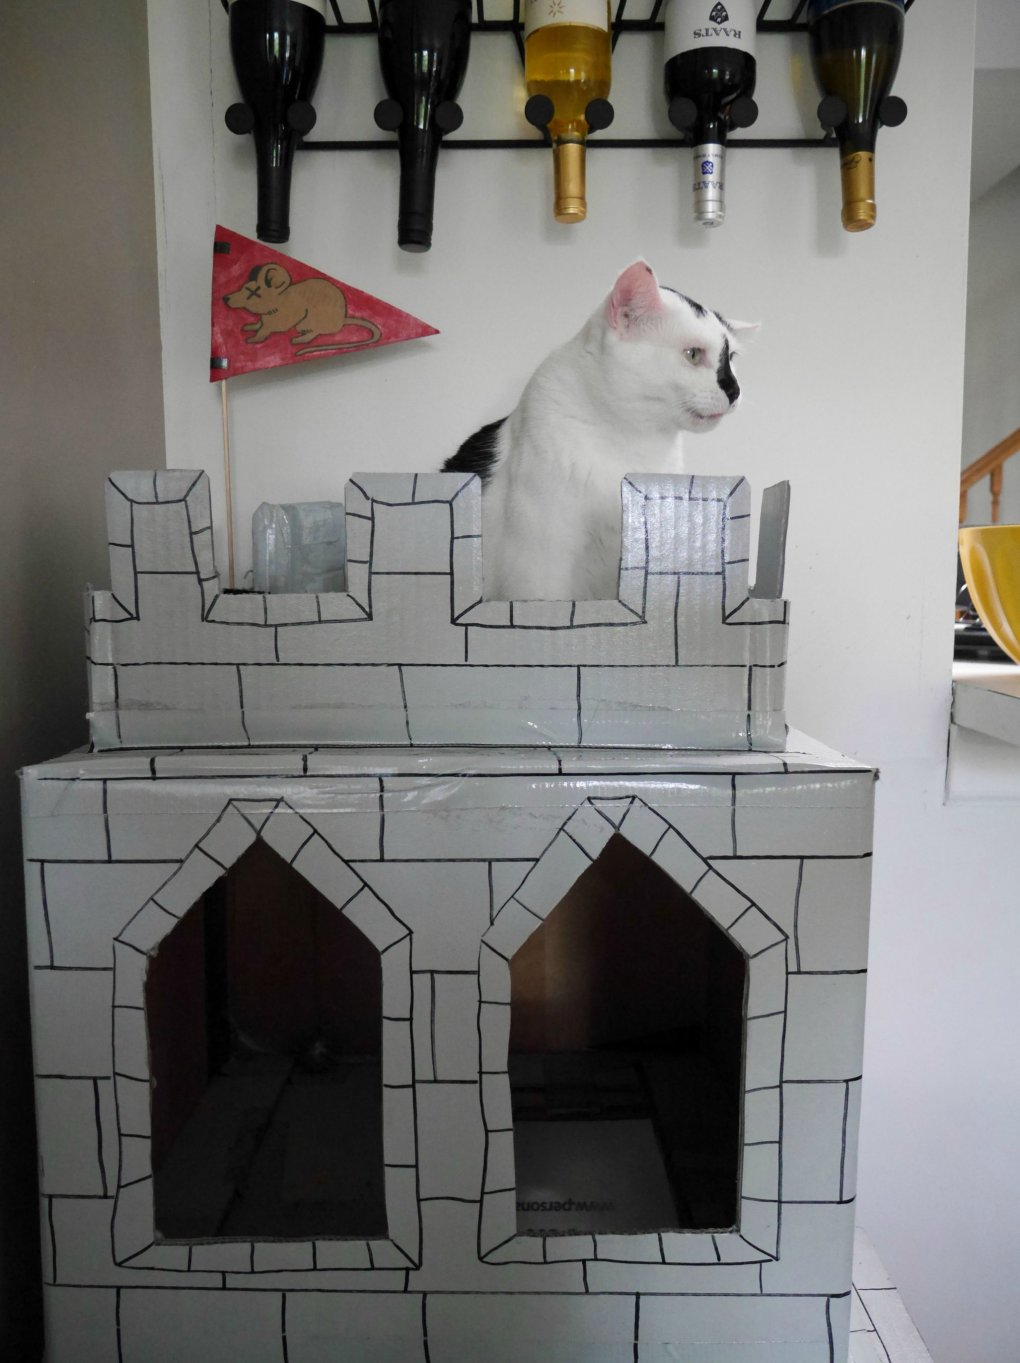 xz3yxzt - why don't we build cardboard castle to our cats? this is how to do it.